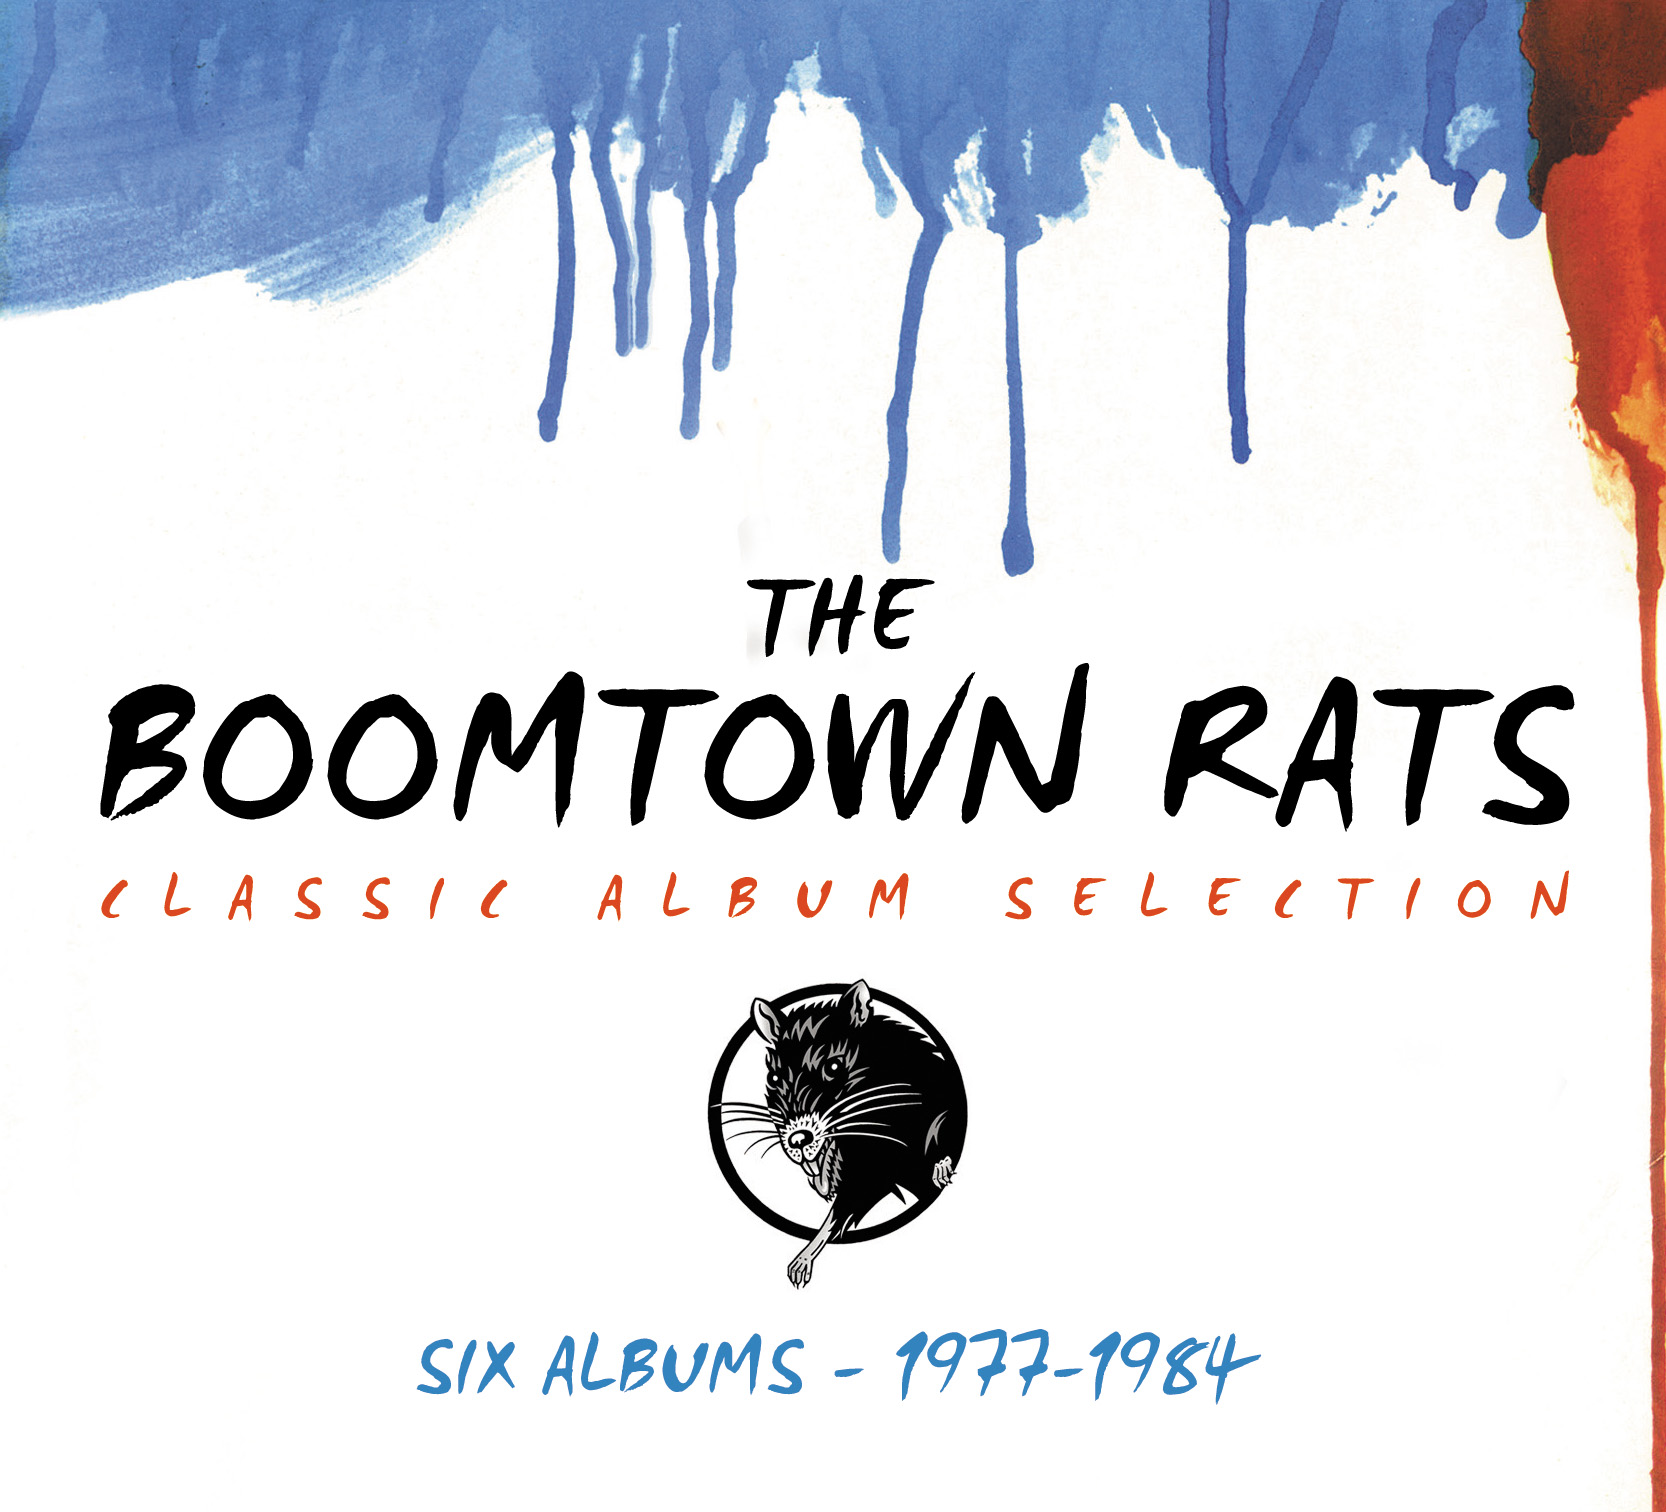 The Boomtown Rats / Classic Album Selection box set